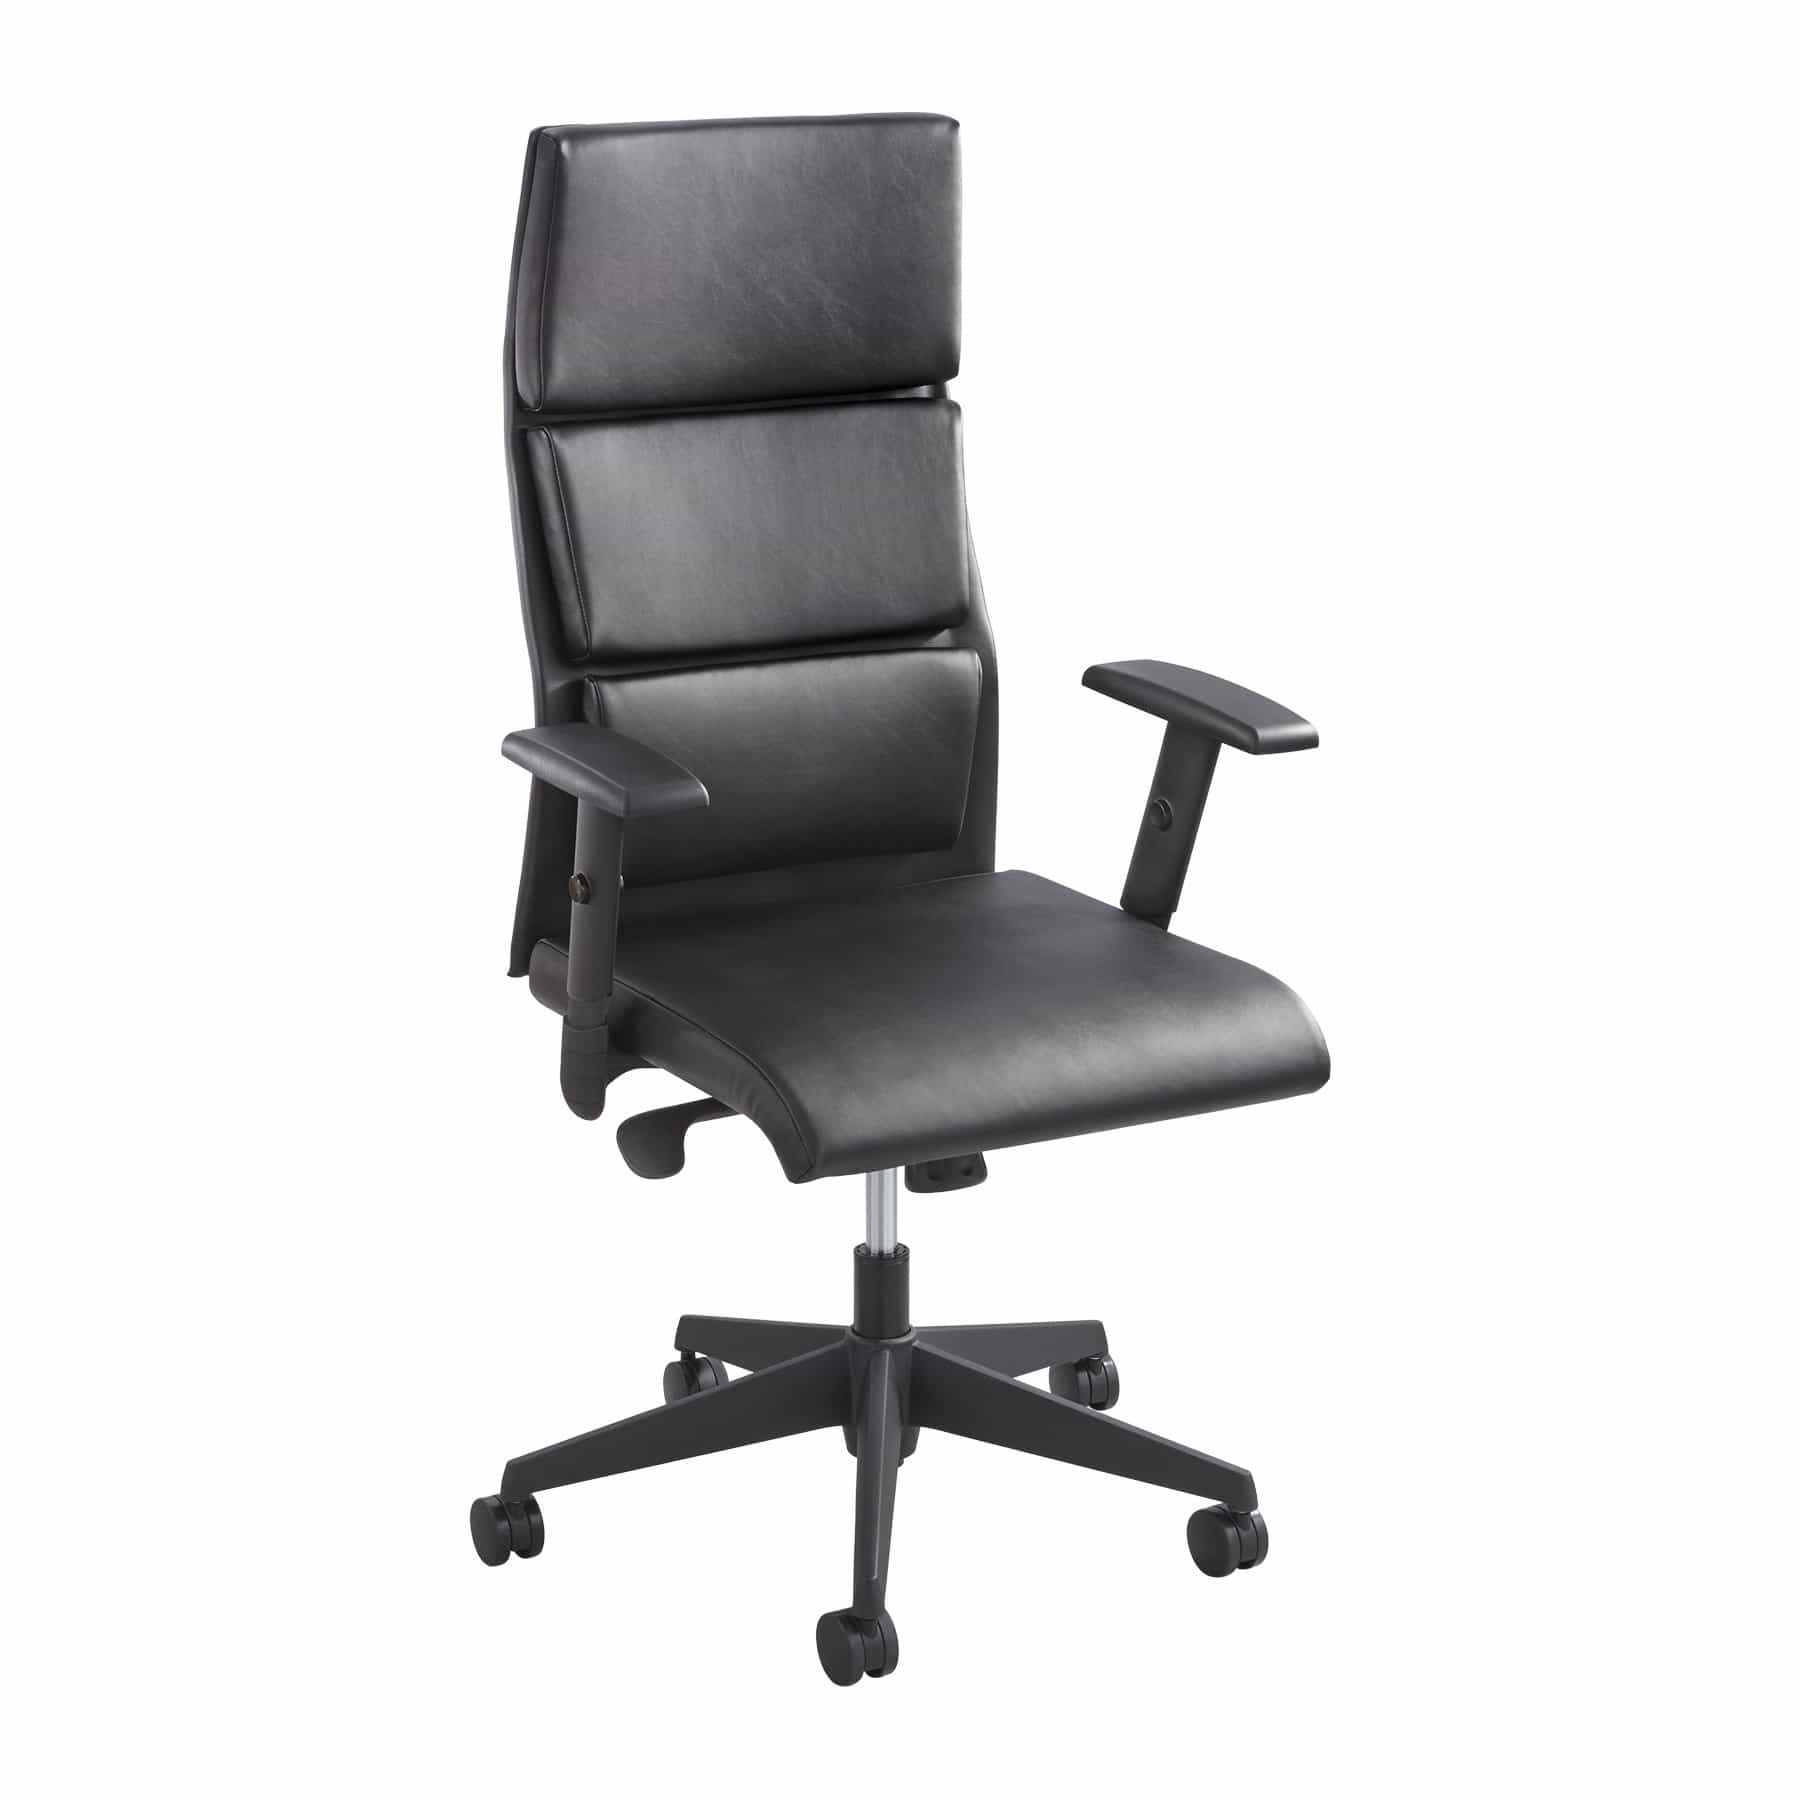 bedinhome - 5070BL Office Furniture Black Tuvi High Back Leather height-adjustable arms Chair - Safco - Executive Seating